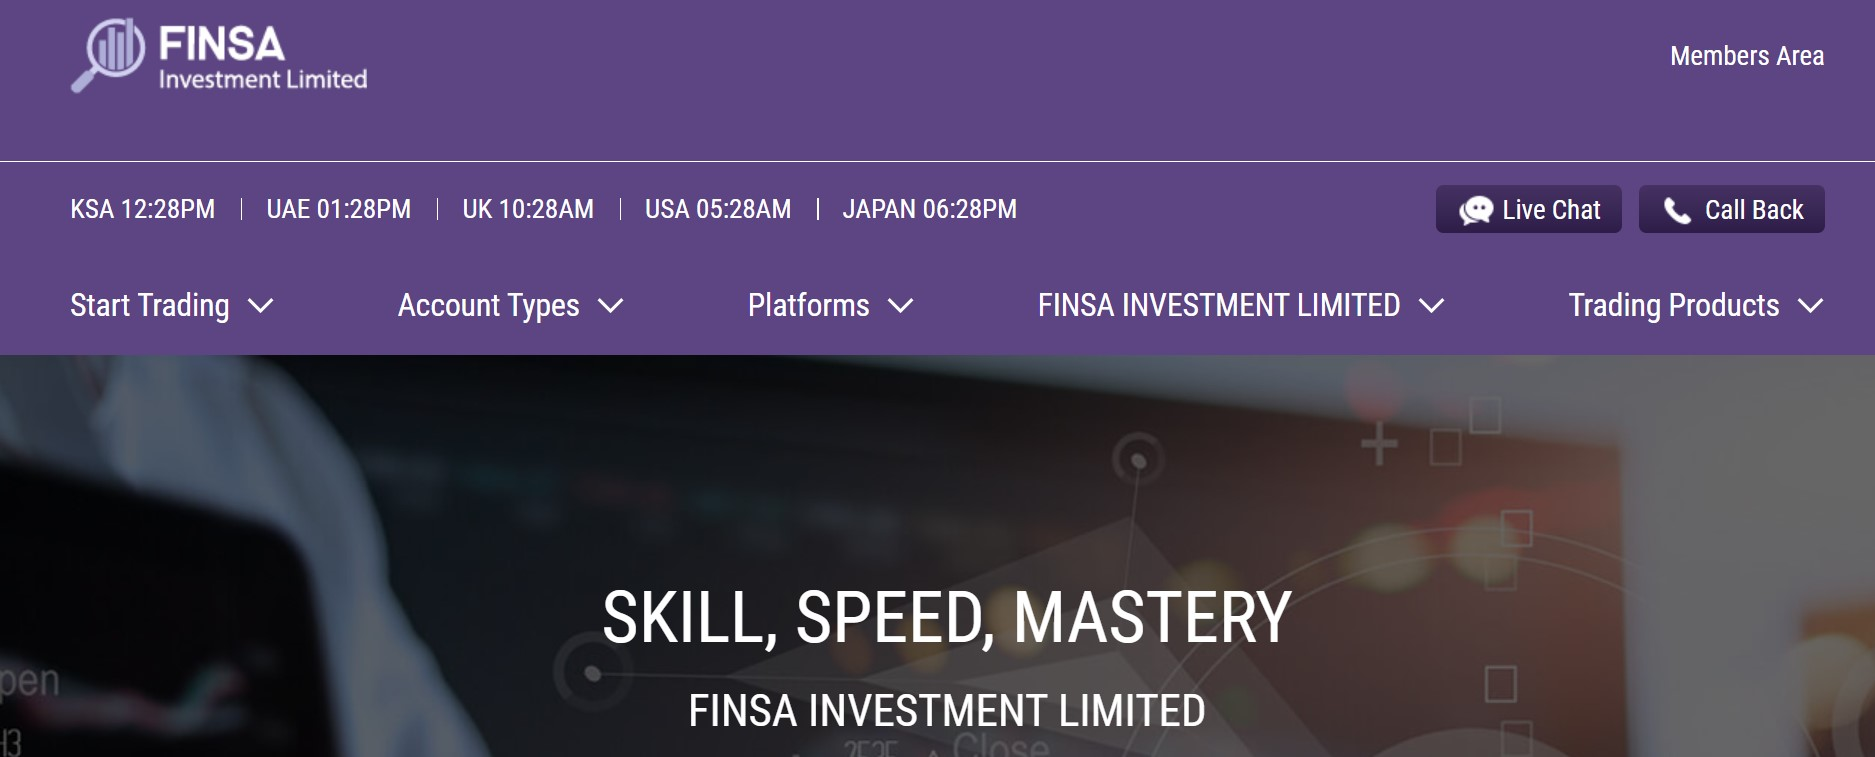 FINSA Investment Limited website